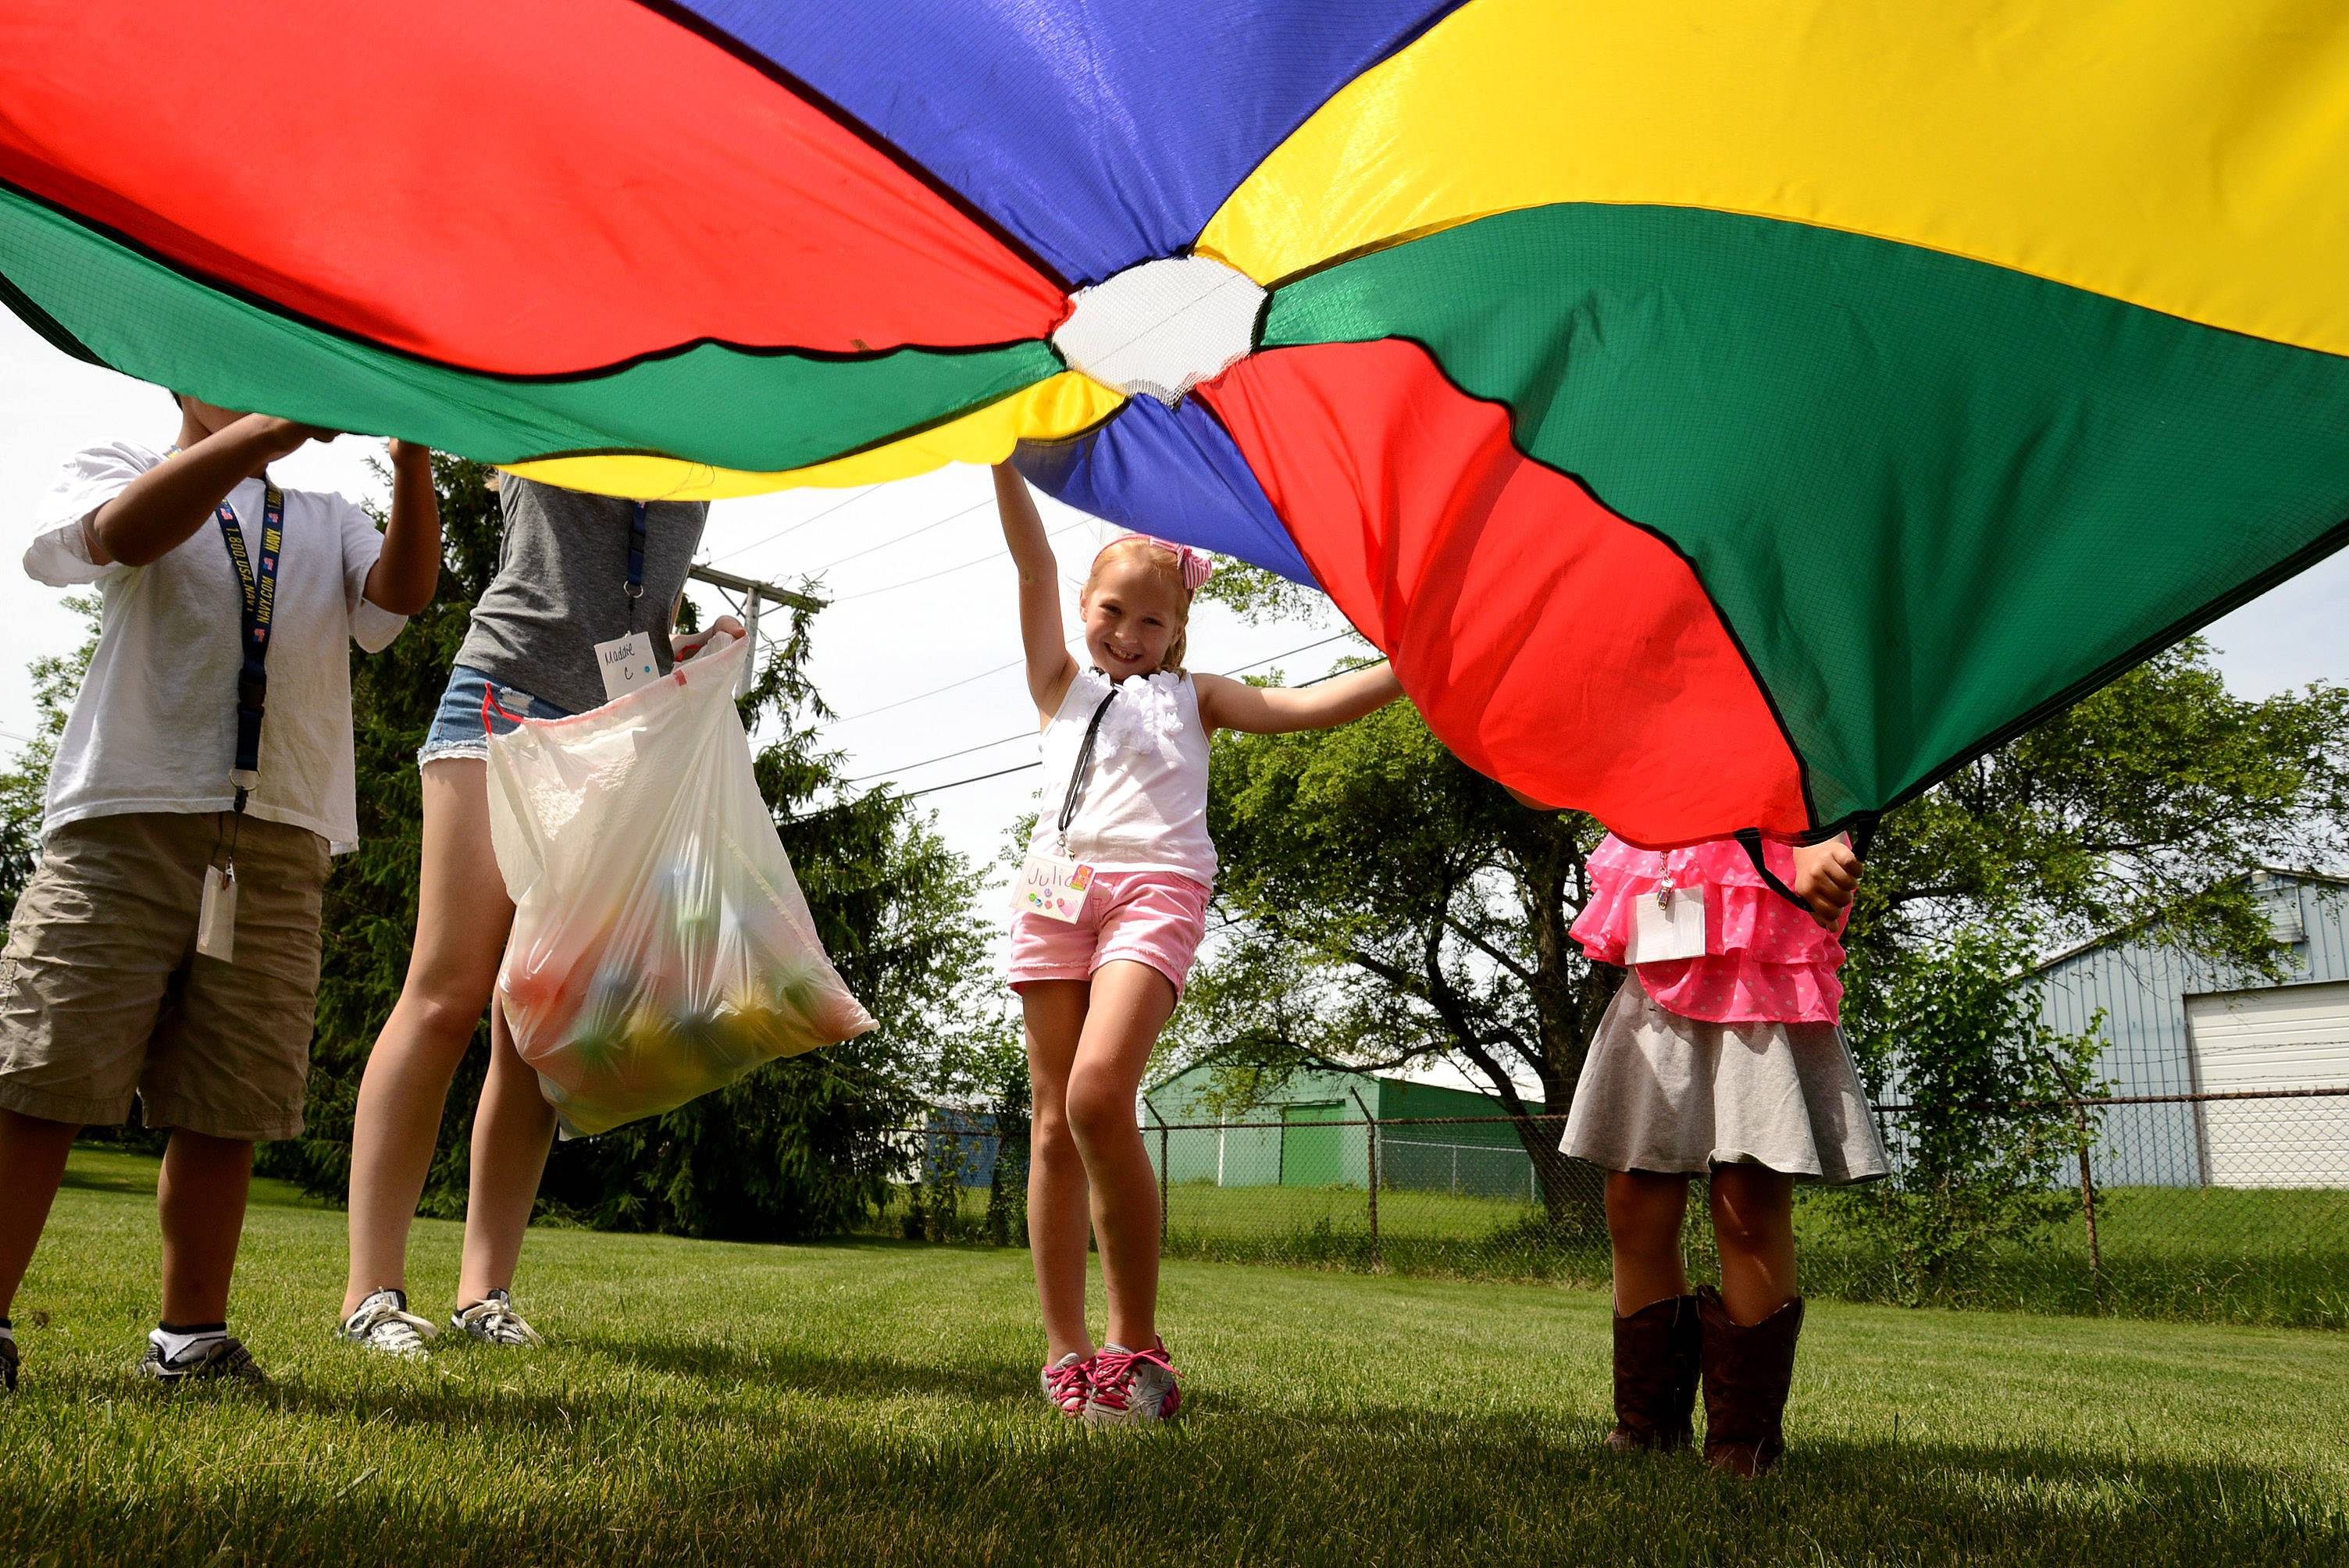 Julia Blasinski, 7, of Lindenhurst, participates in the parachute activity during the 4-H Health Rocks Summer Day Camp held at the University of Illinois Extension in Grayslake for 5-7 year olds.